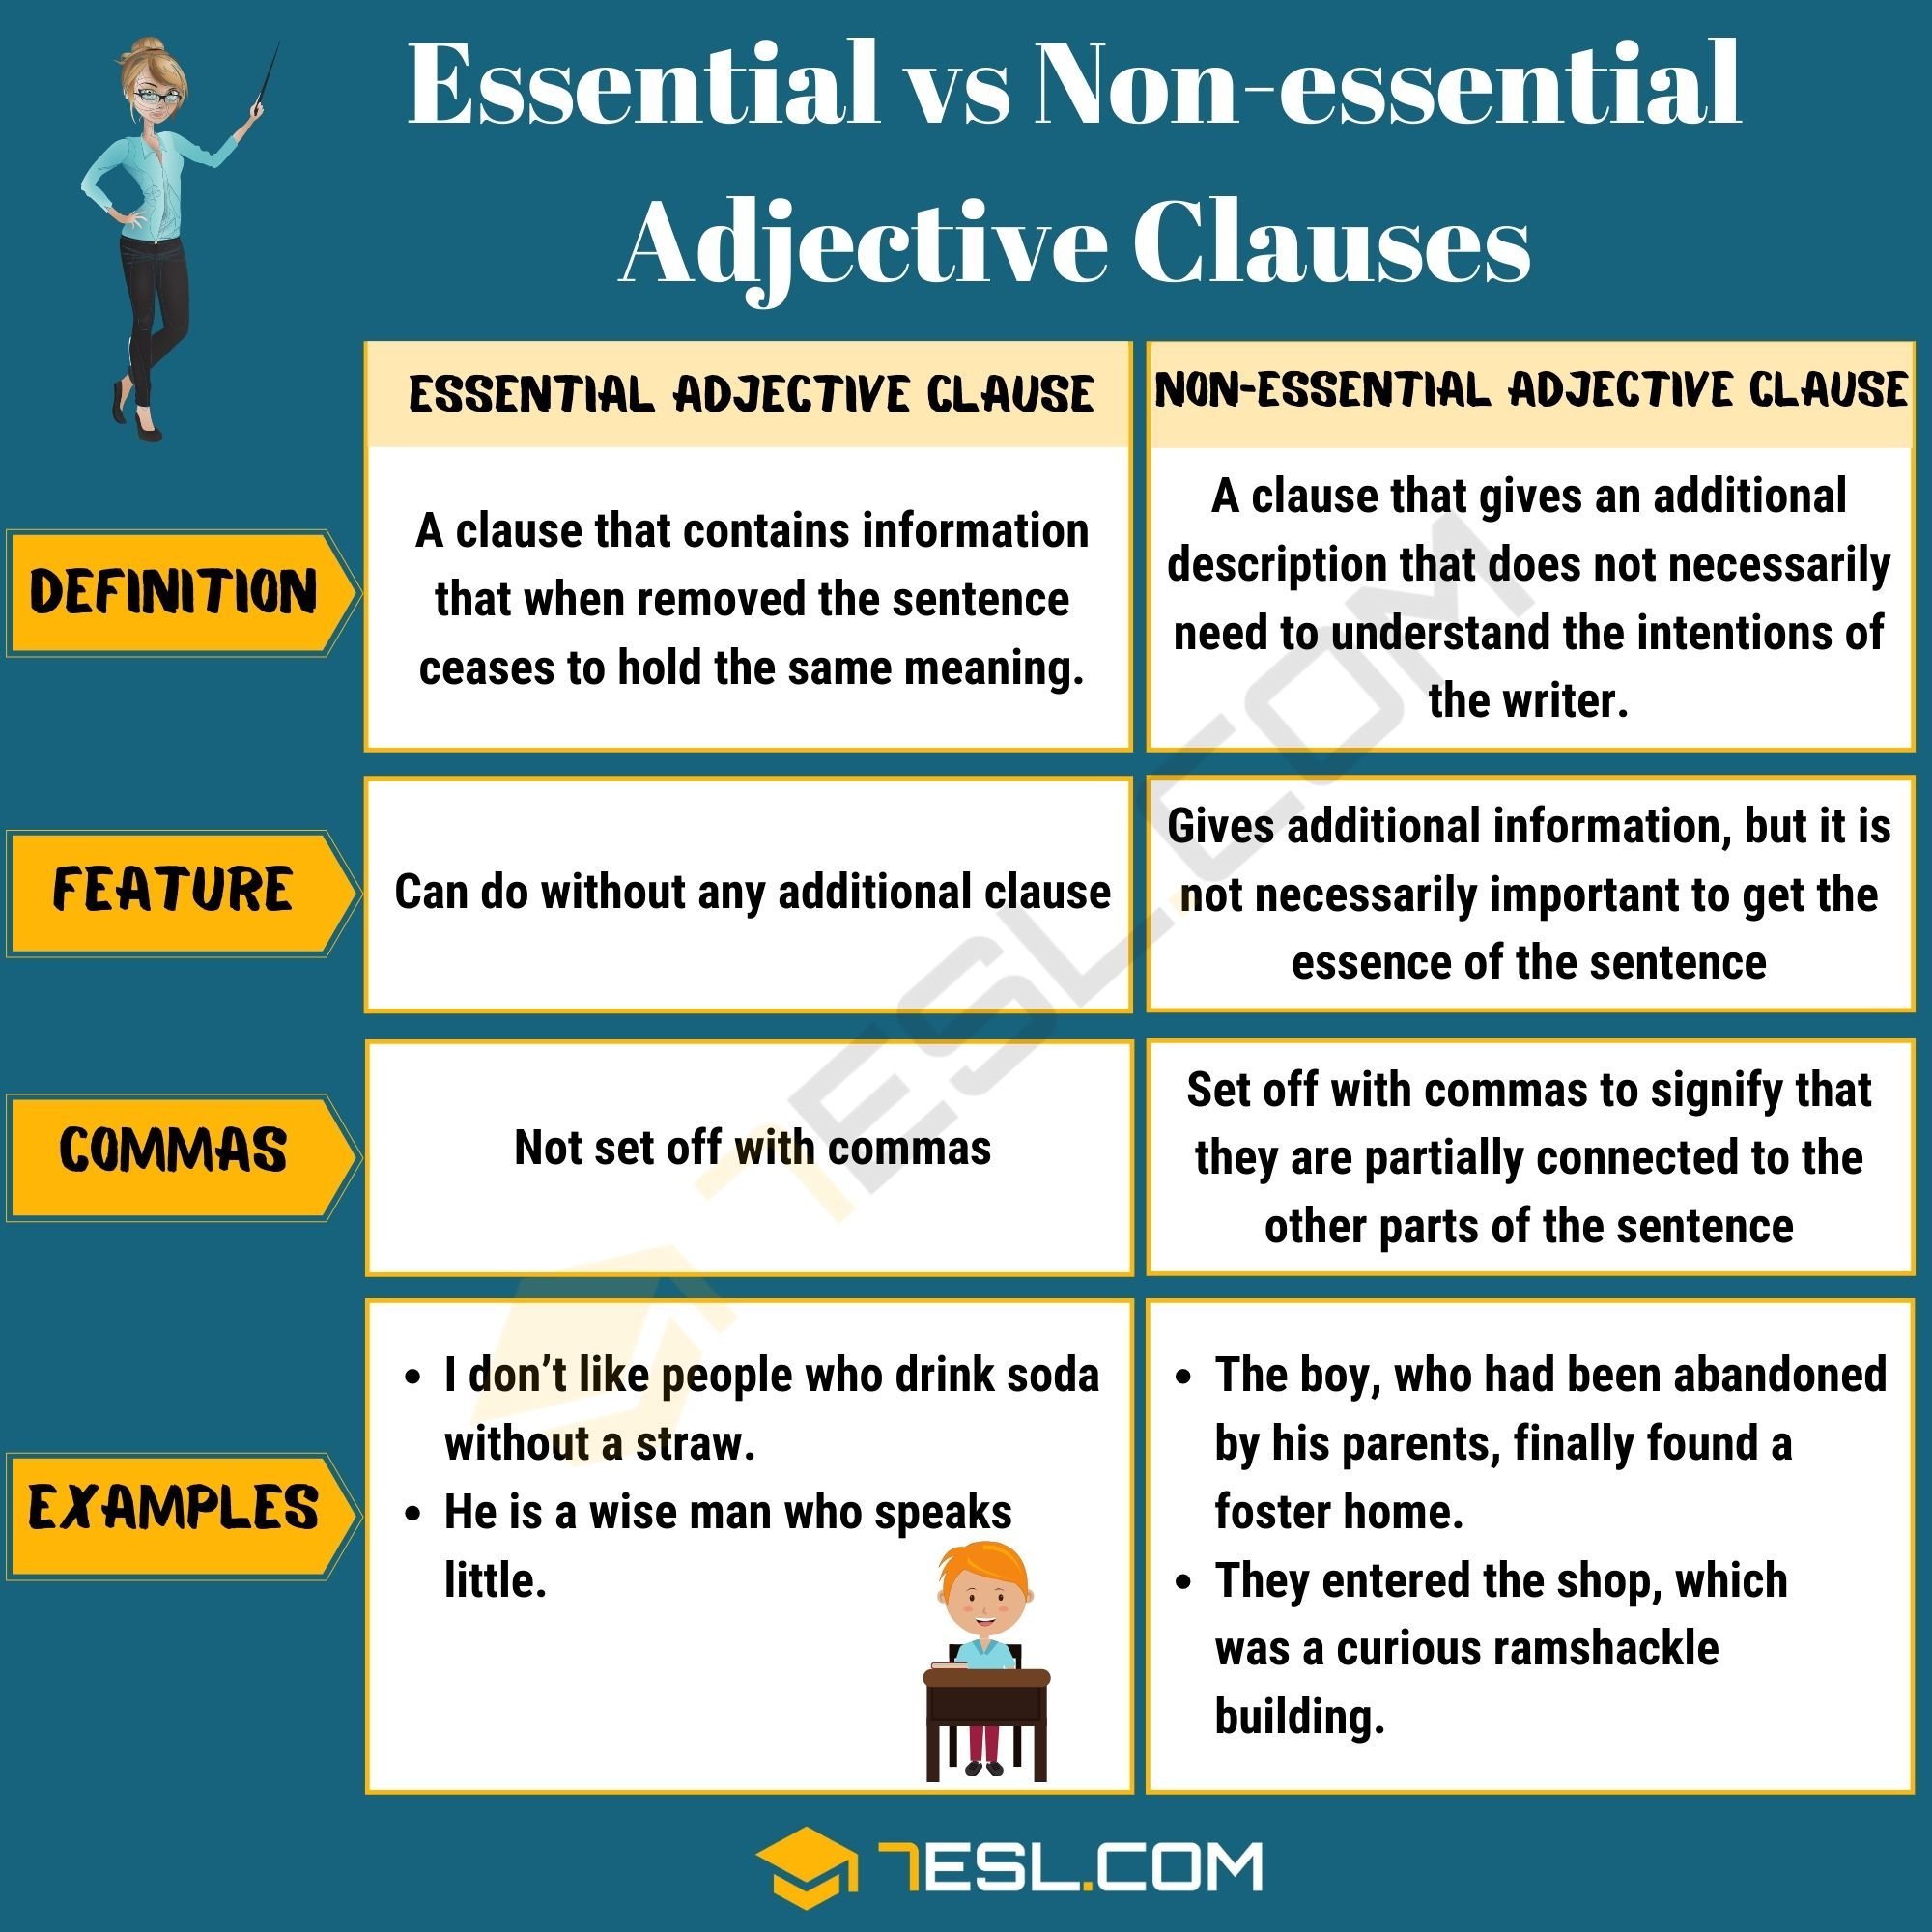 Essential and Non-essential Adjective Clauses